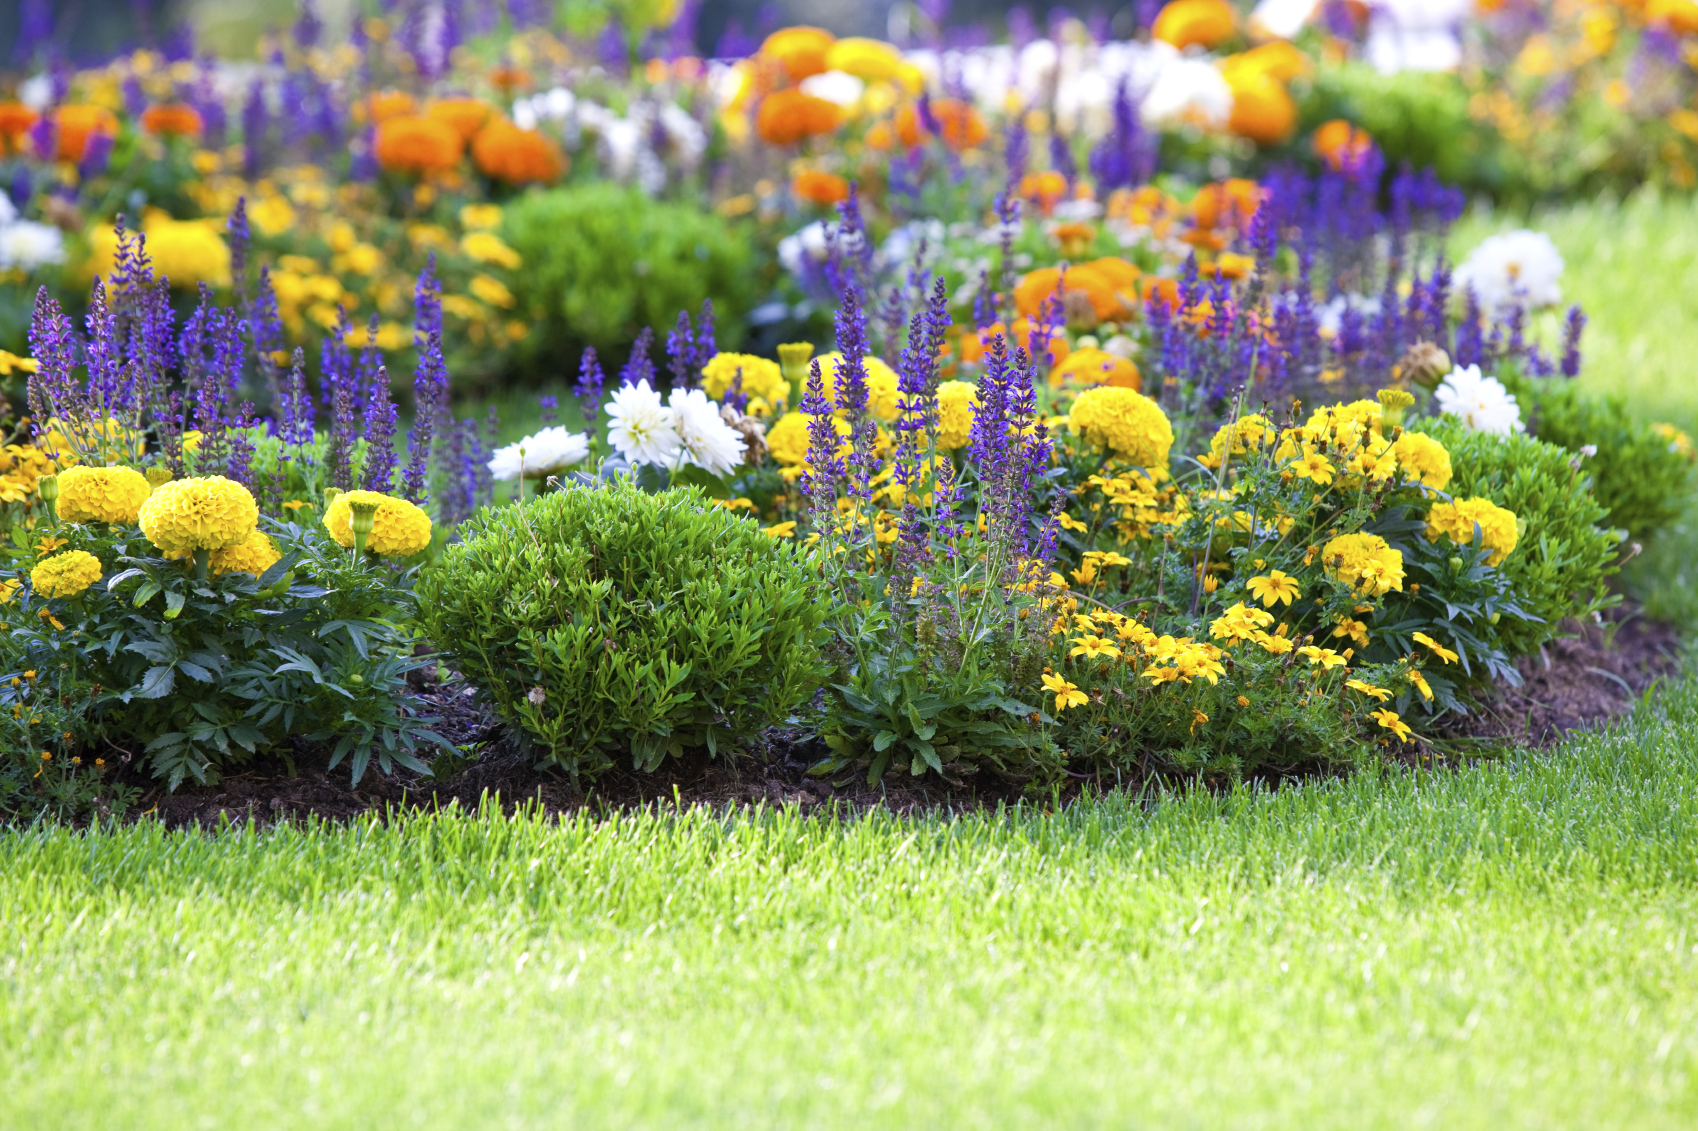 Garden Design With Flower Gardening: How To Start A Flower Garden With Small  Backyard Landscapes